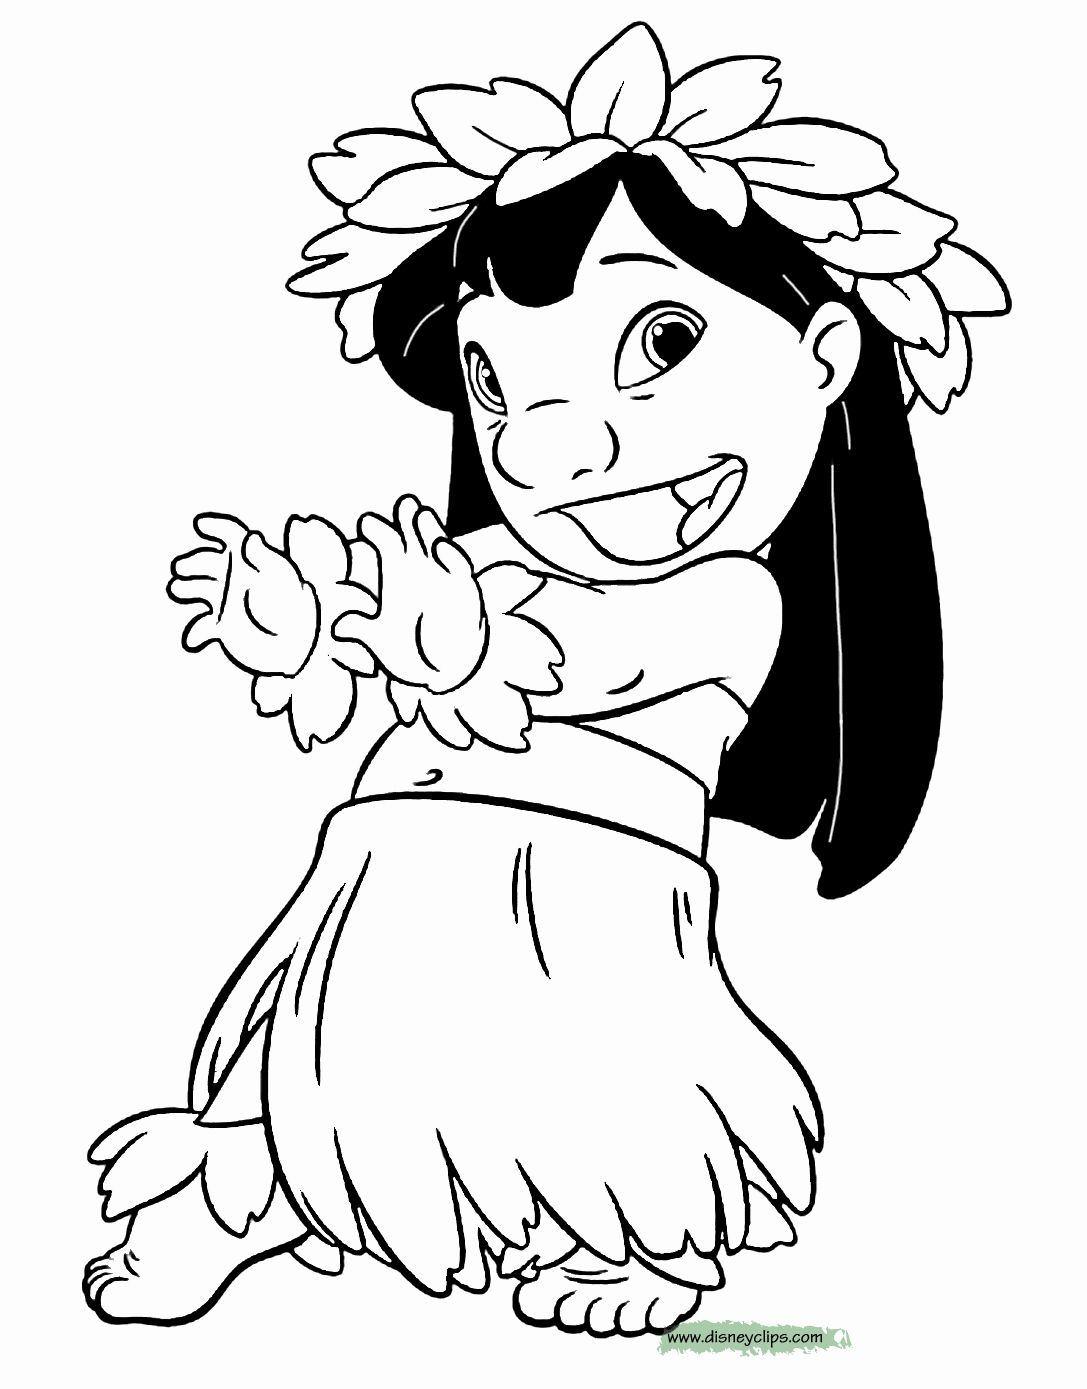 angel stitch coloring pages. STITCH is an animal cartoon